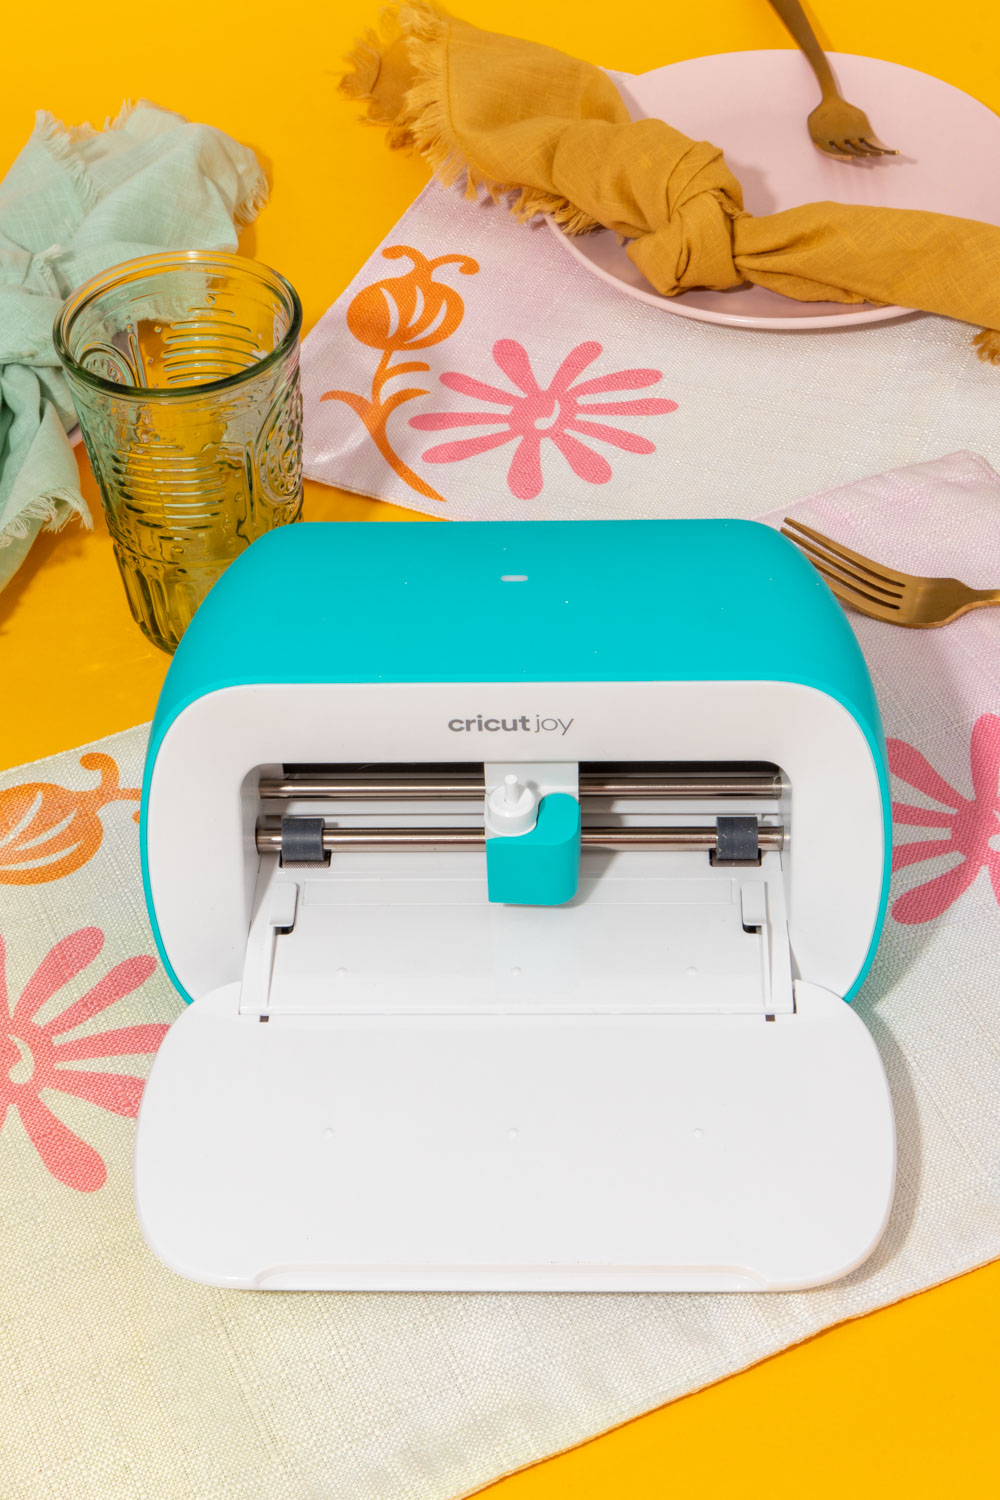 Cricut Joy on top of floral placemat on yellow background